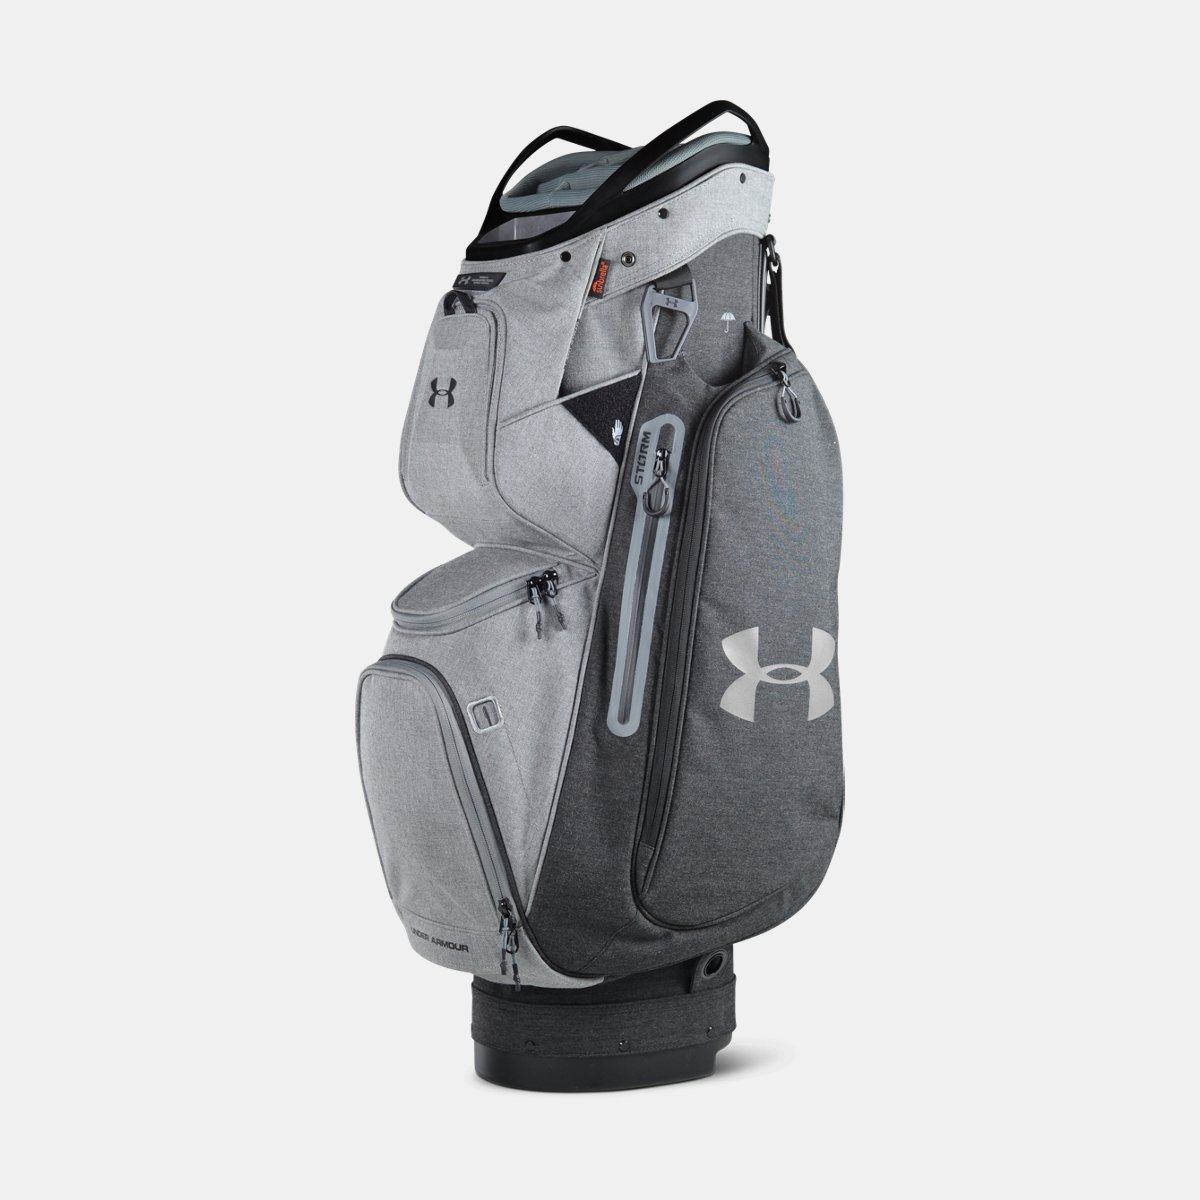 [UNDER ARMOUR] アンダーアーマー Men's UA Storm Armada Sunbrella Cart Bag GRAPHITE MEDIUM HEATHER [並行輸入品]   B074Z55DBB